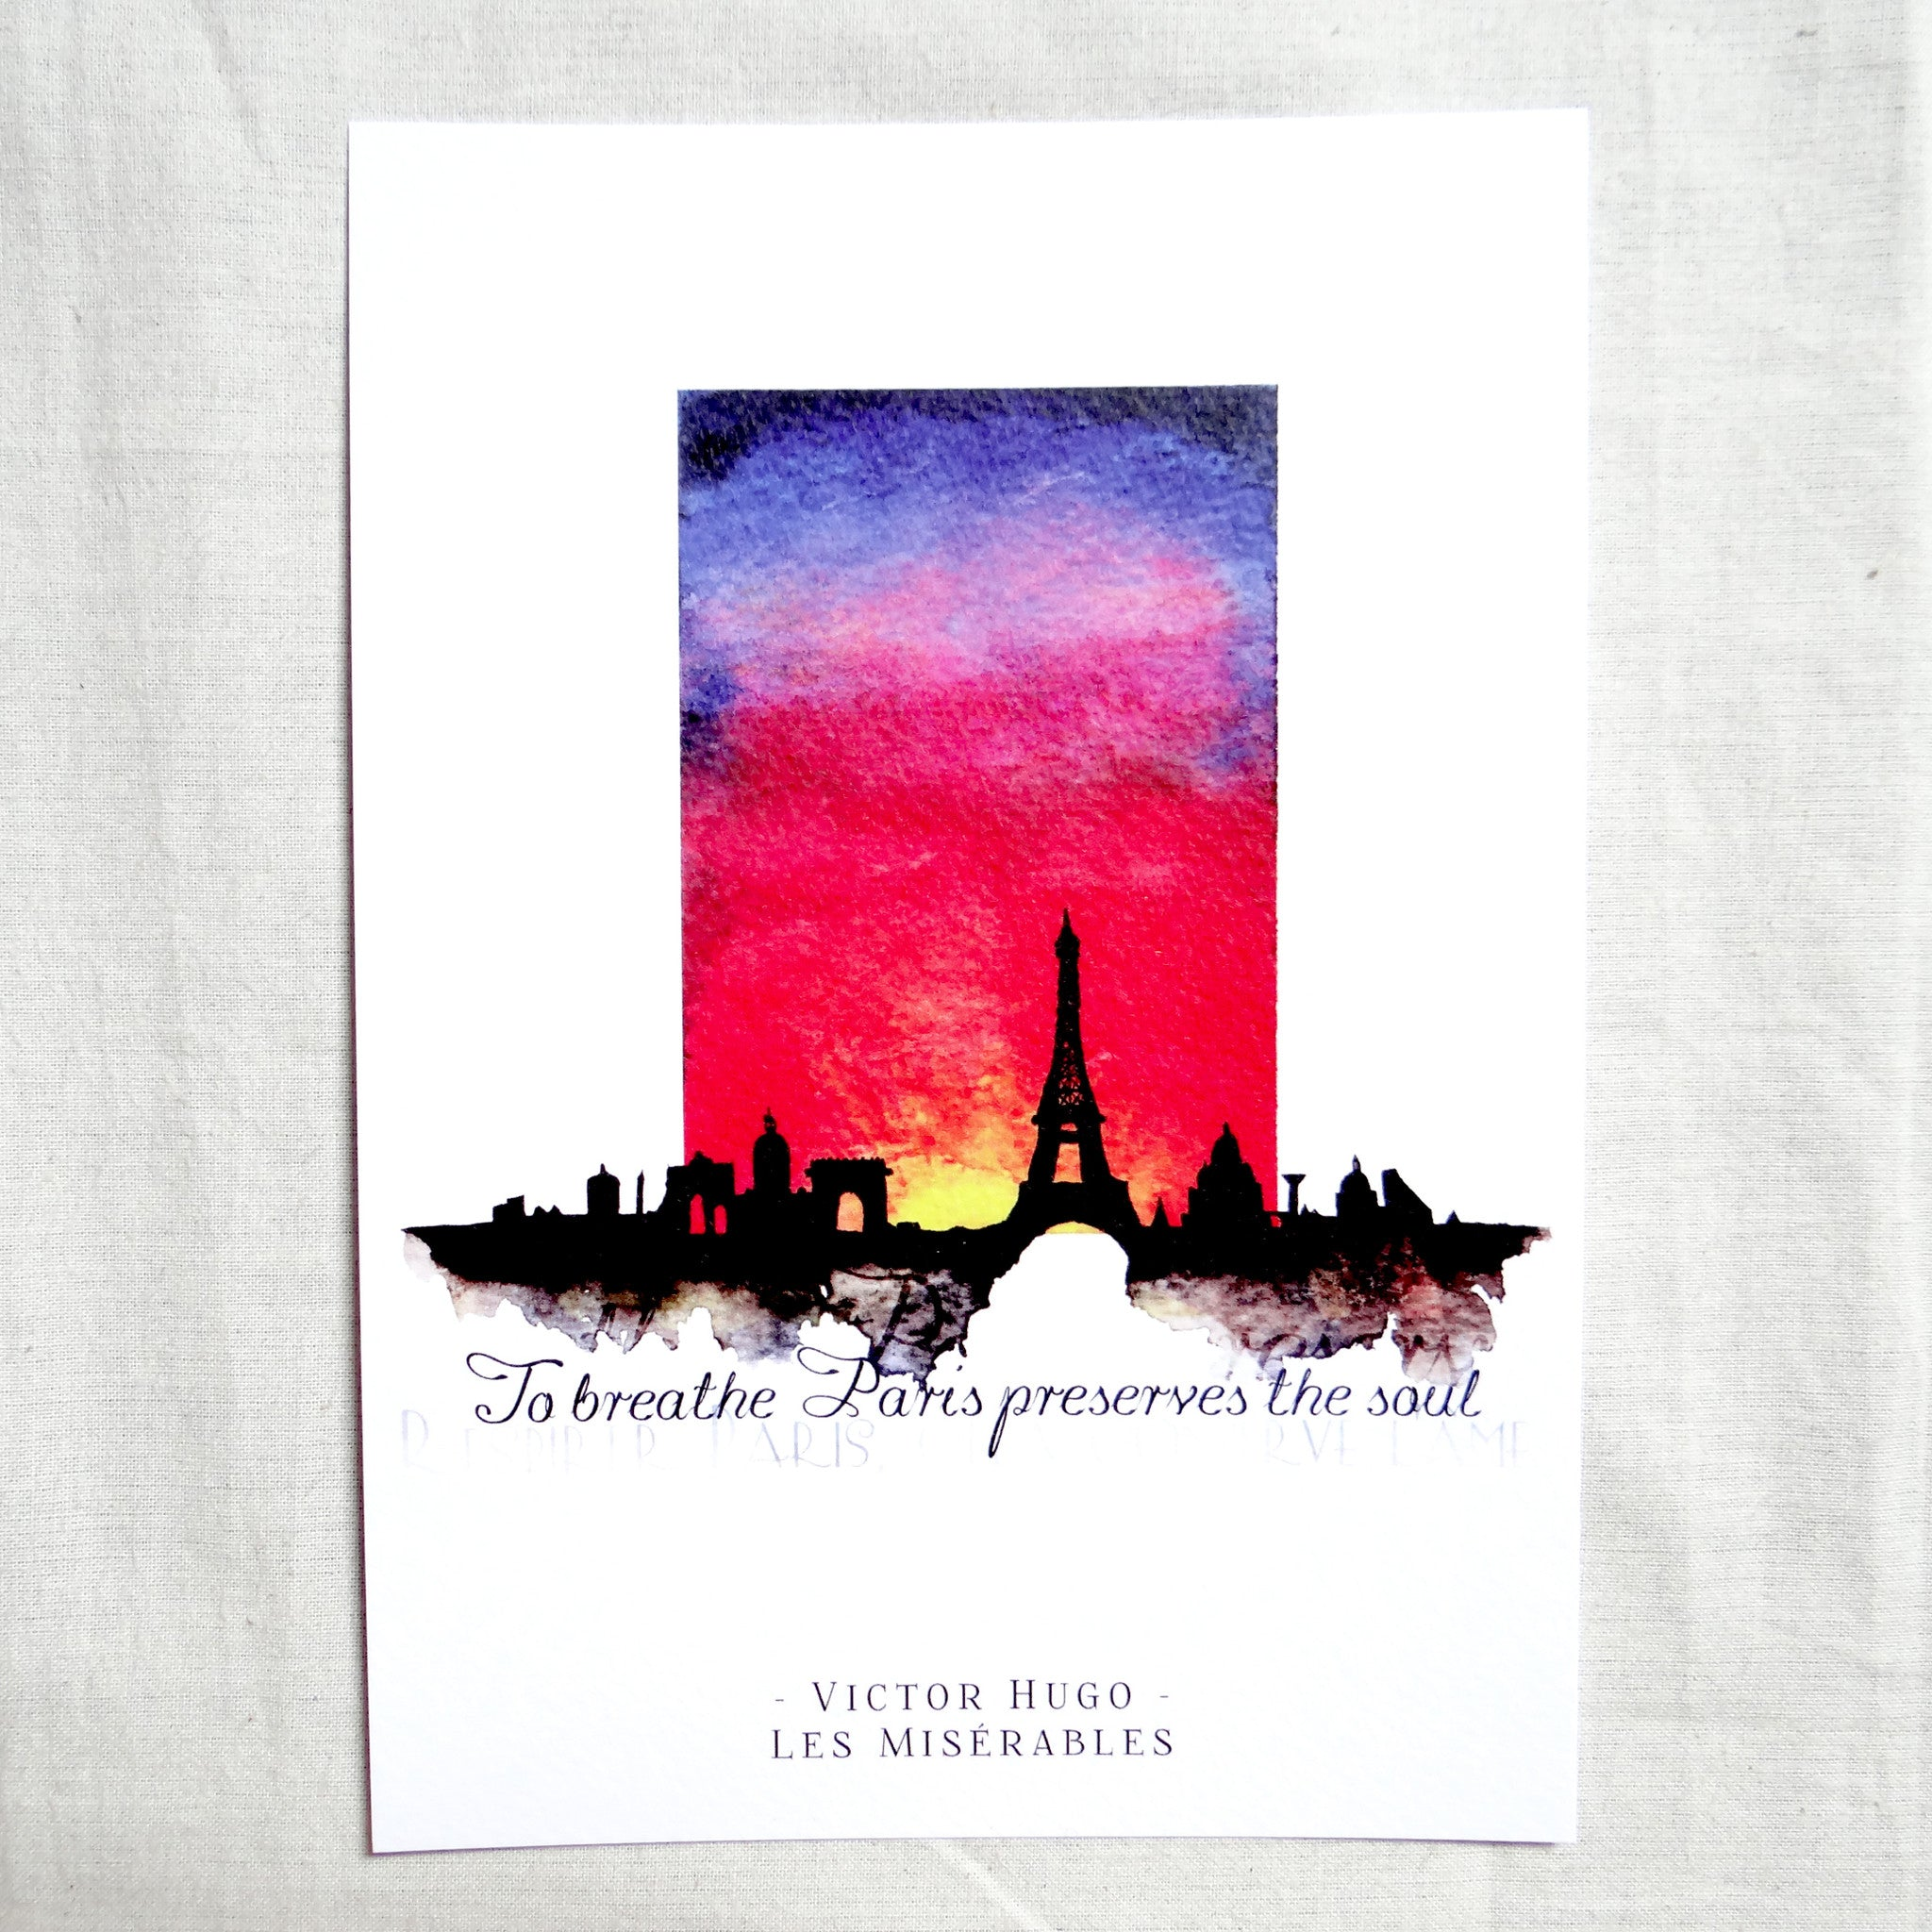 victor hugo les miserables wall art print, book quote home decor